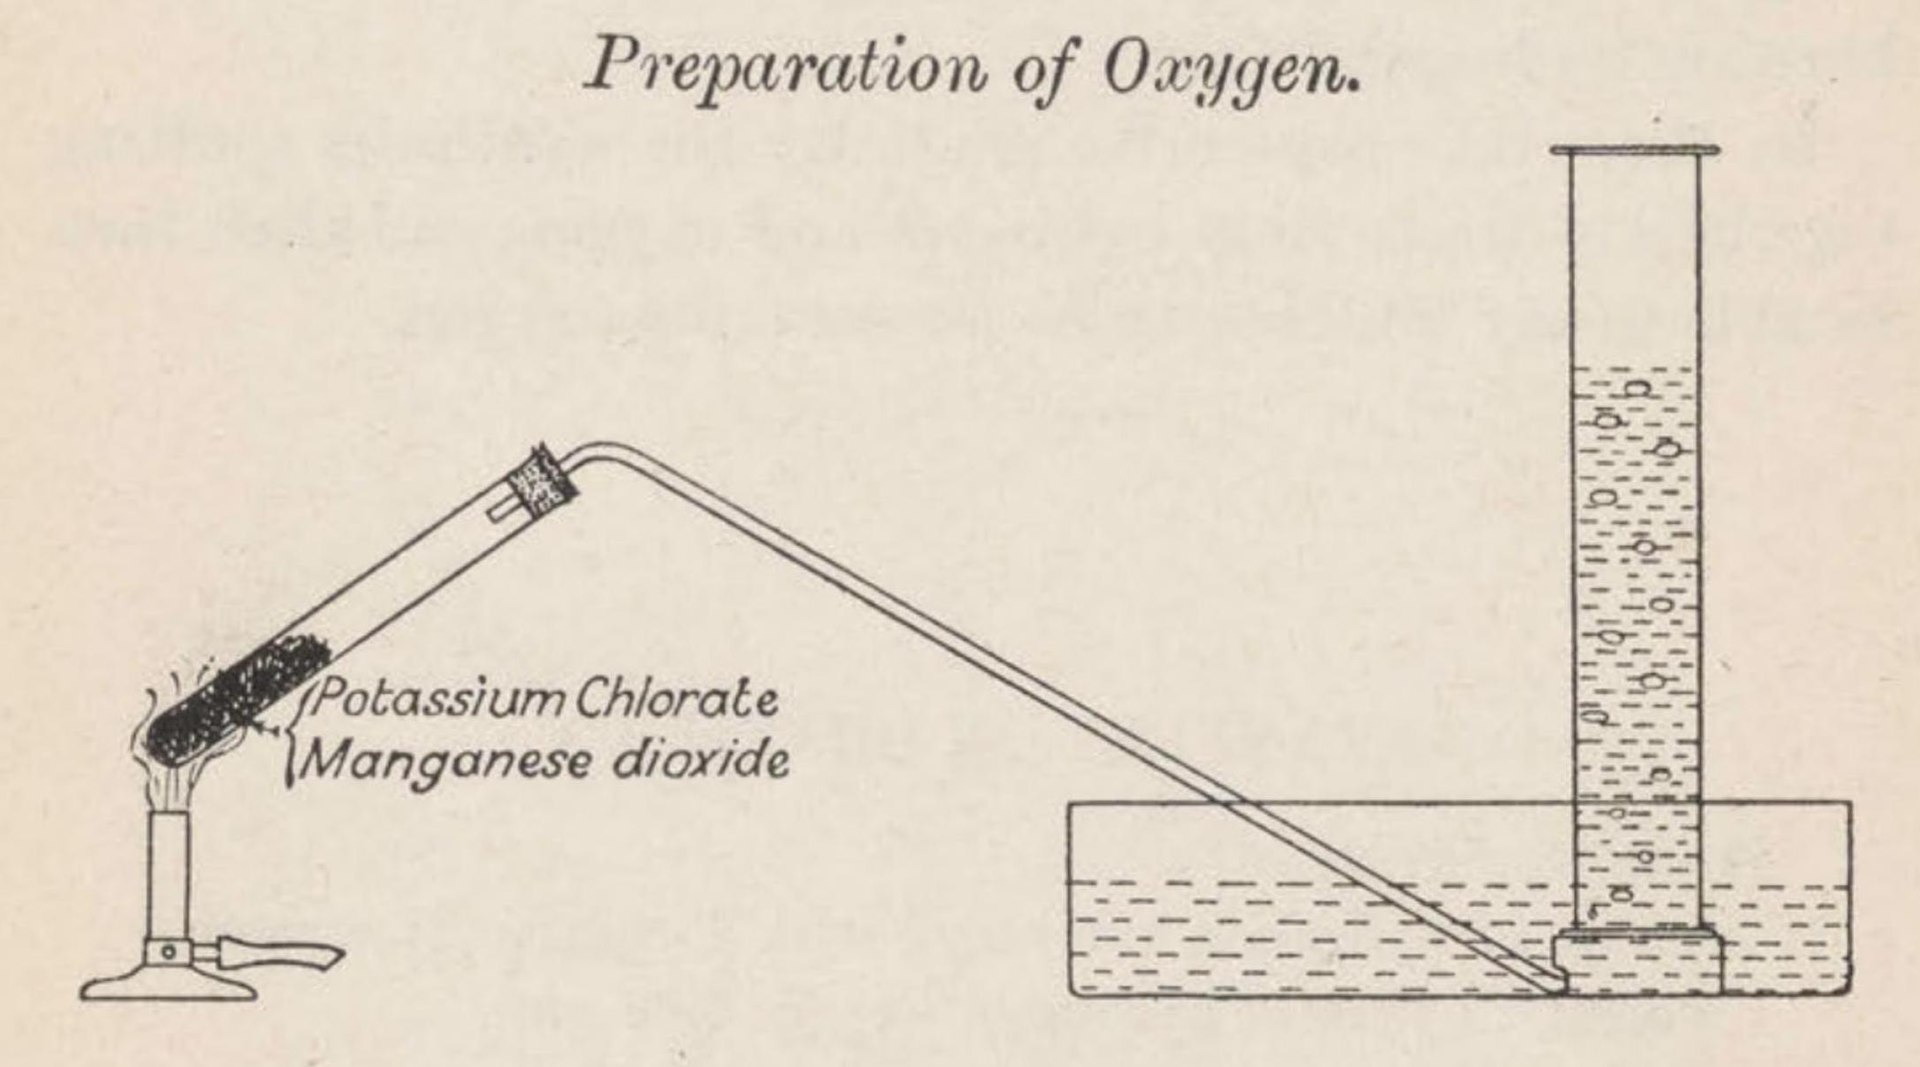 An experiment setup with test tubes to prepare oxygen